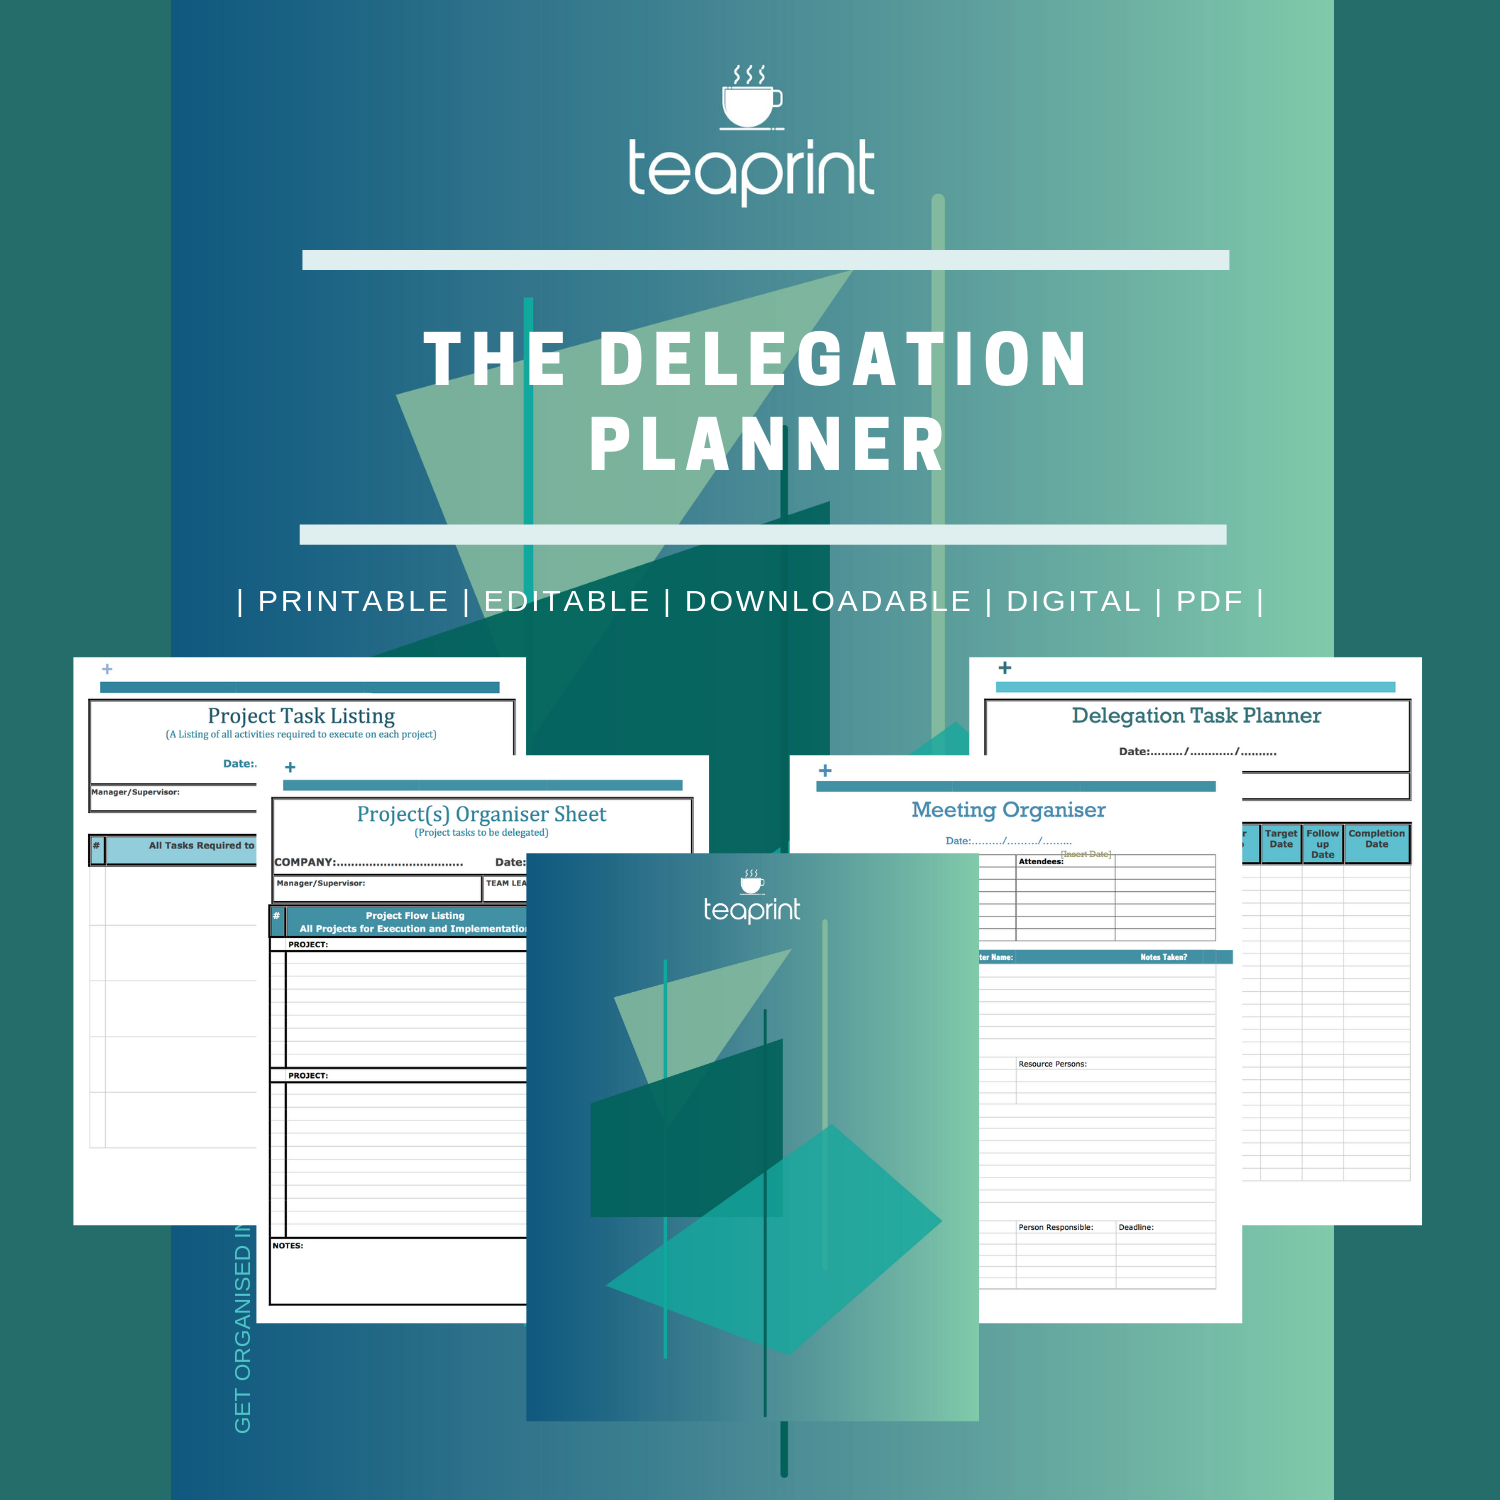 GET YOUR BUSINESS DELEGATION PLANNER HERE